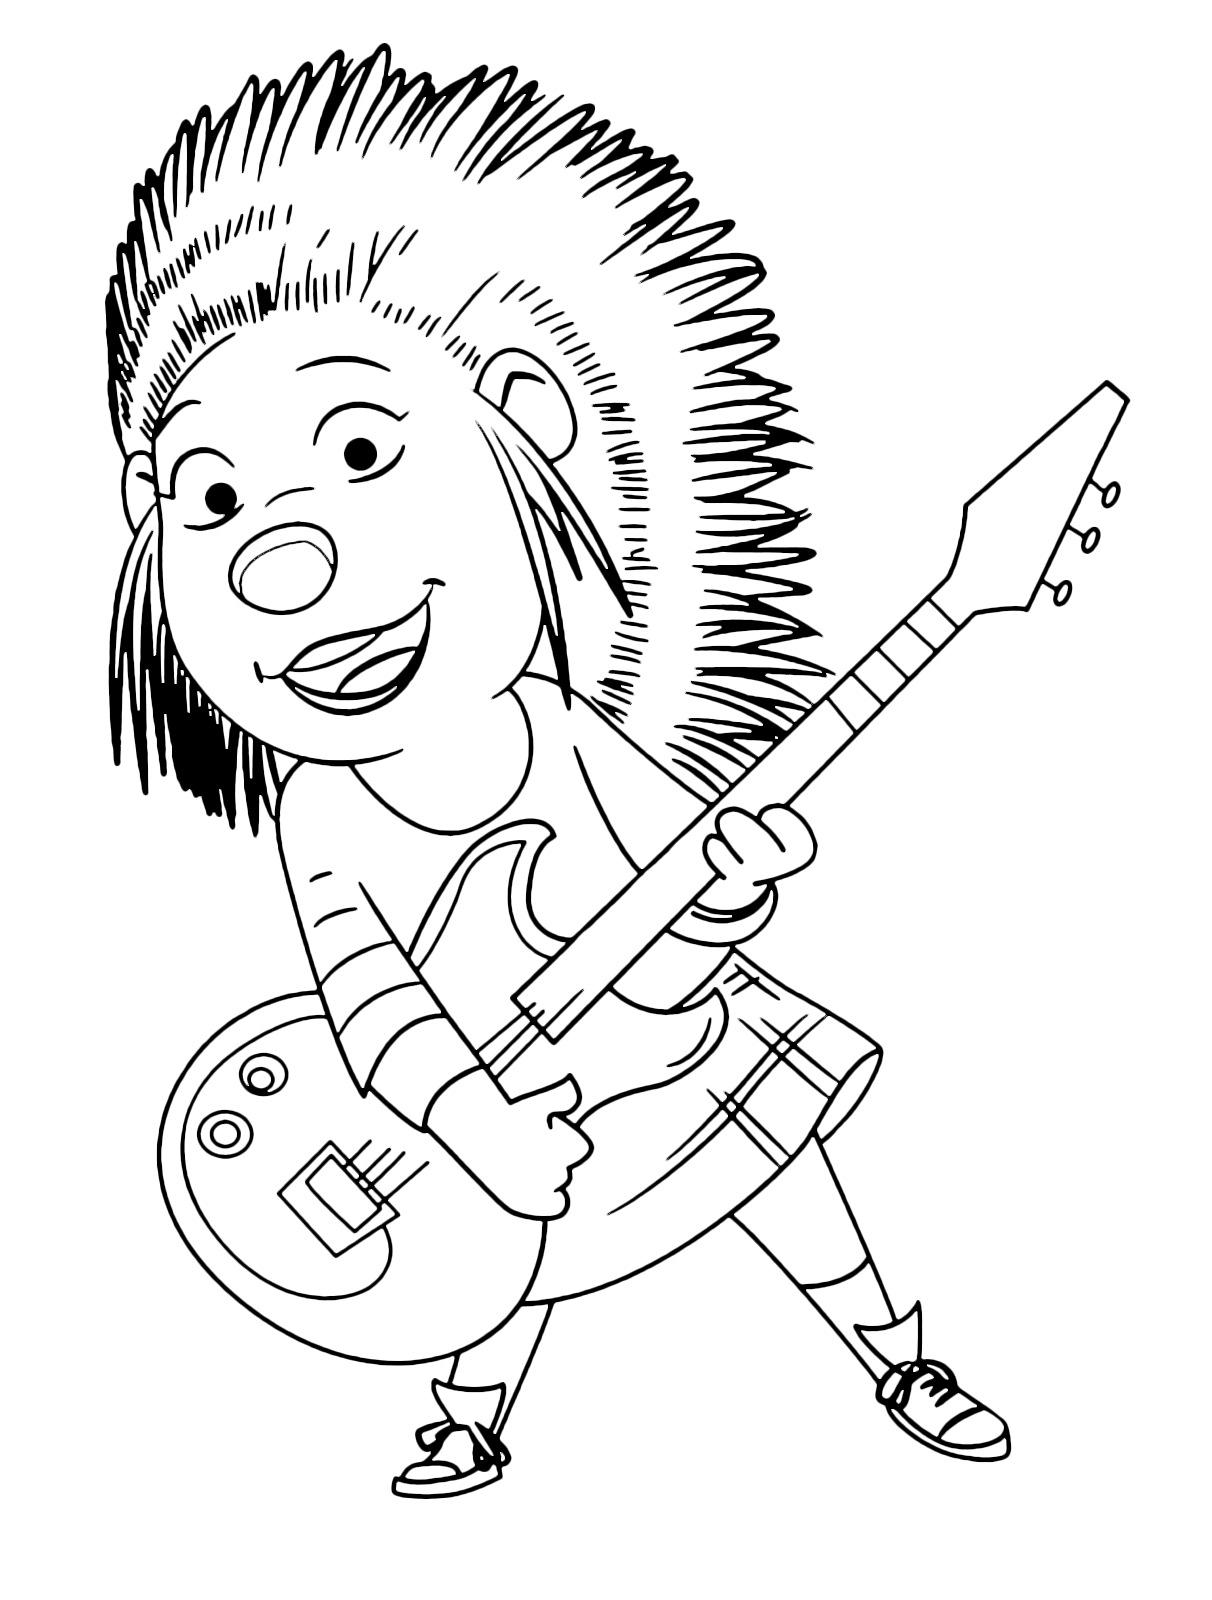 Sing - The porcupine Ash plays her guitar